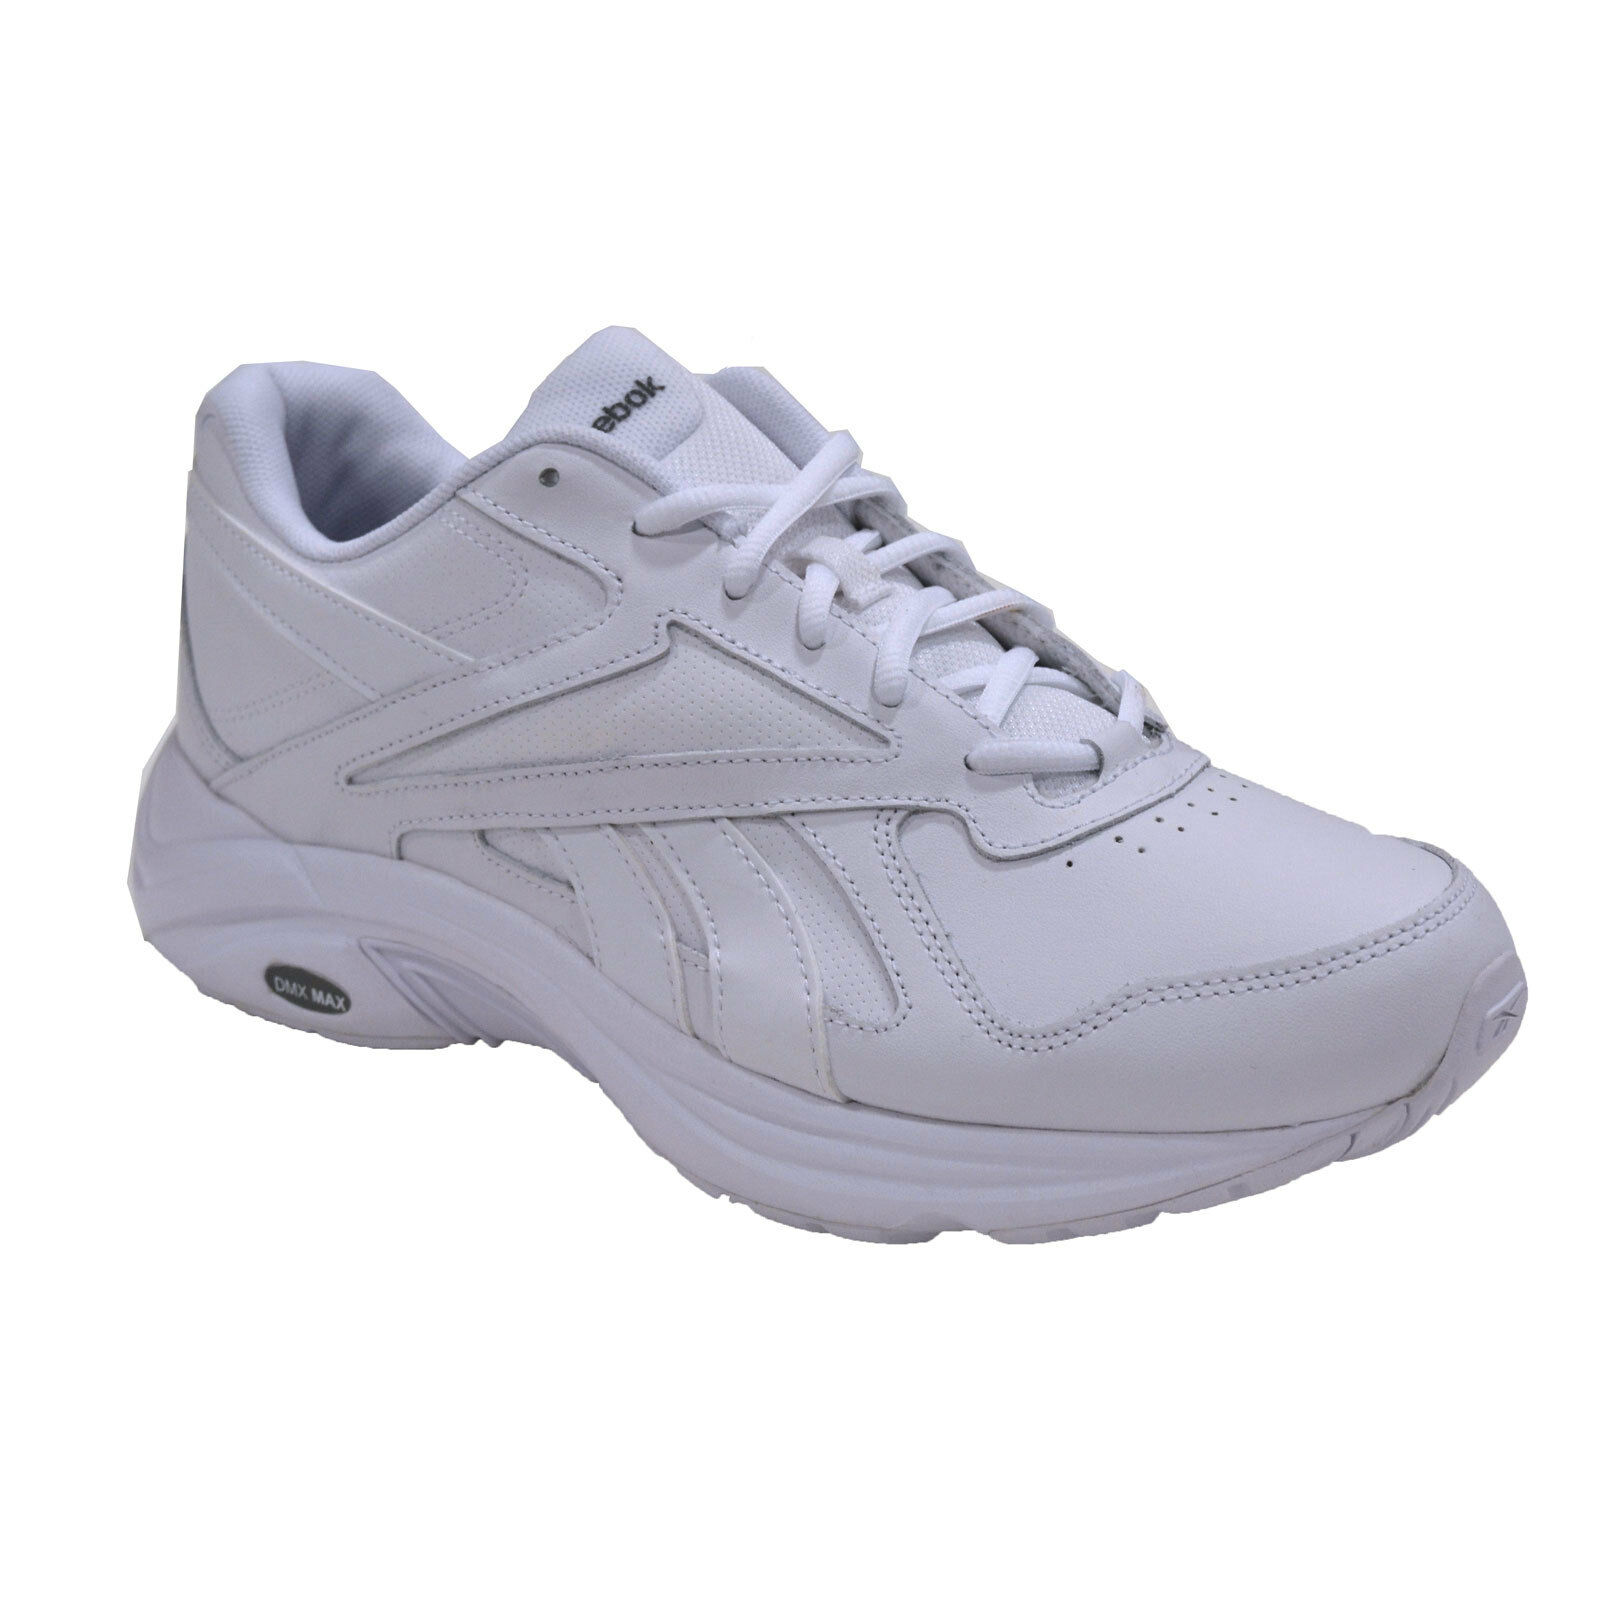 Reebok Walk Ultra V Schuhes Damens Classic Walking Sneakers Wide Dmx Max Bm Cd Wide Sneakers New 2cfe08